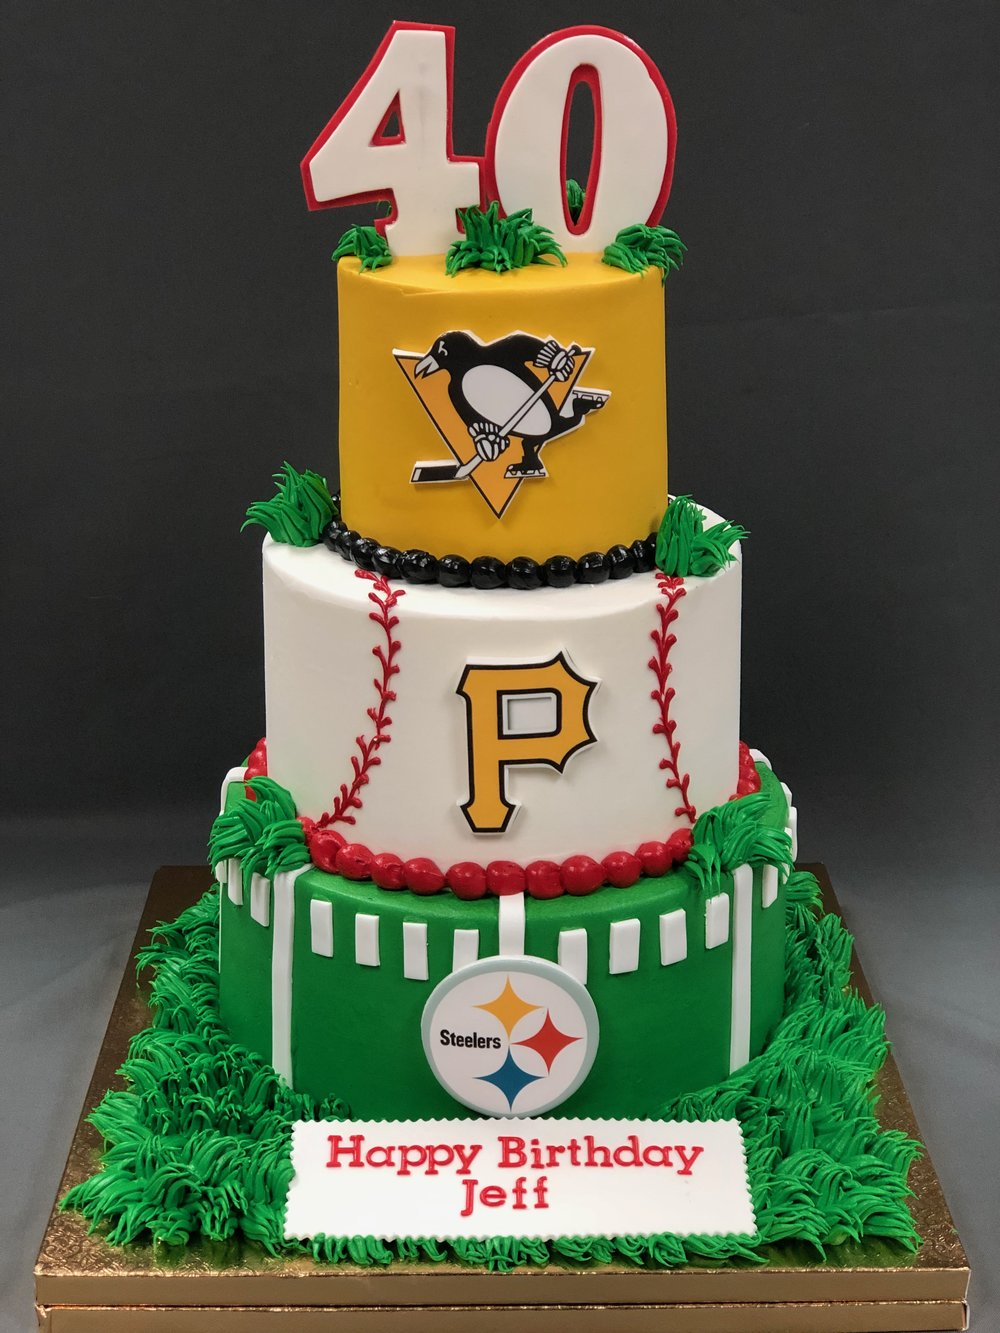 Incredible Pittsburgh Team Fans 40Th Birthday Cake Skazka Desserts Bakery Funny Birthday Cards Online Fluifree Goldxyz